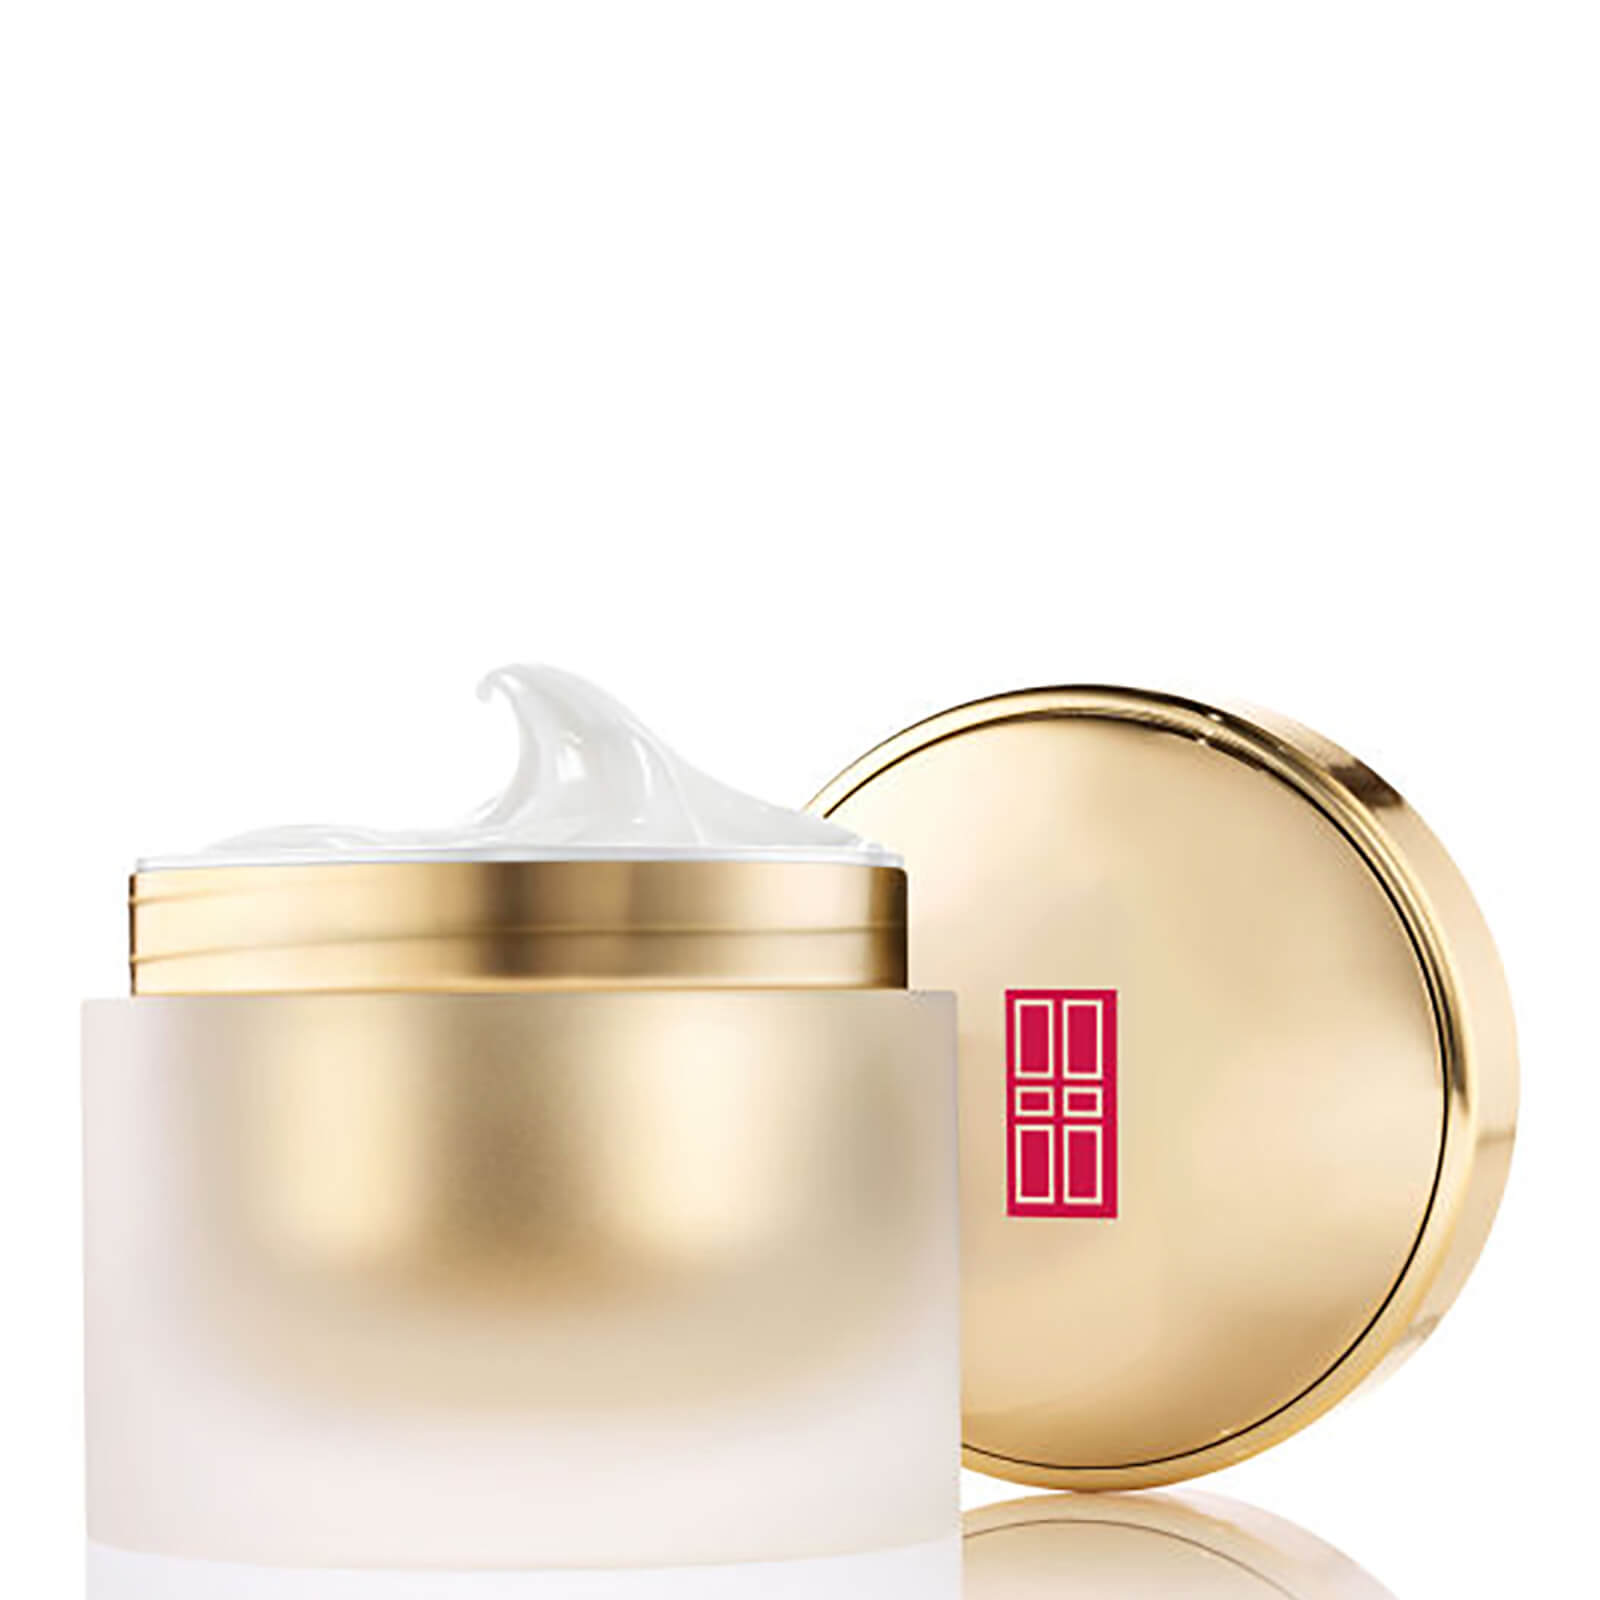 Elizabeth Arden Ceramide Lift and Firm Moisture Lotion SPF30 1.7oz (50ml)